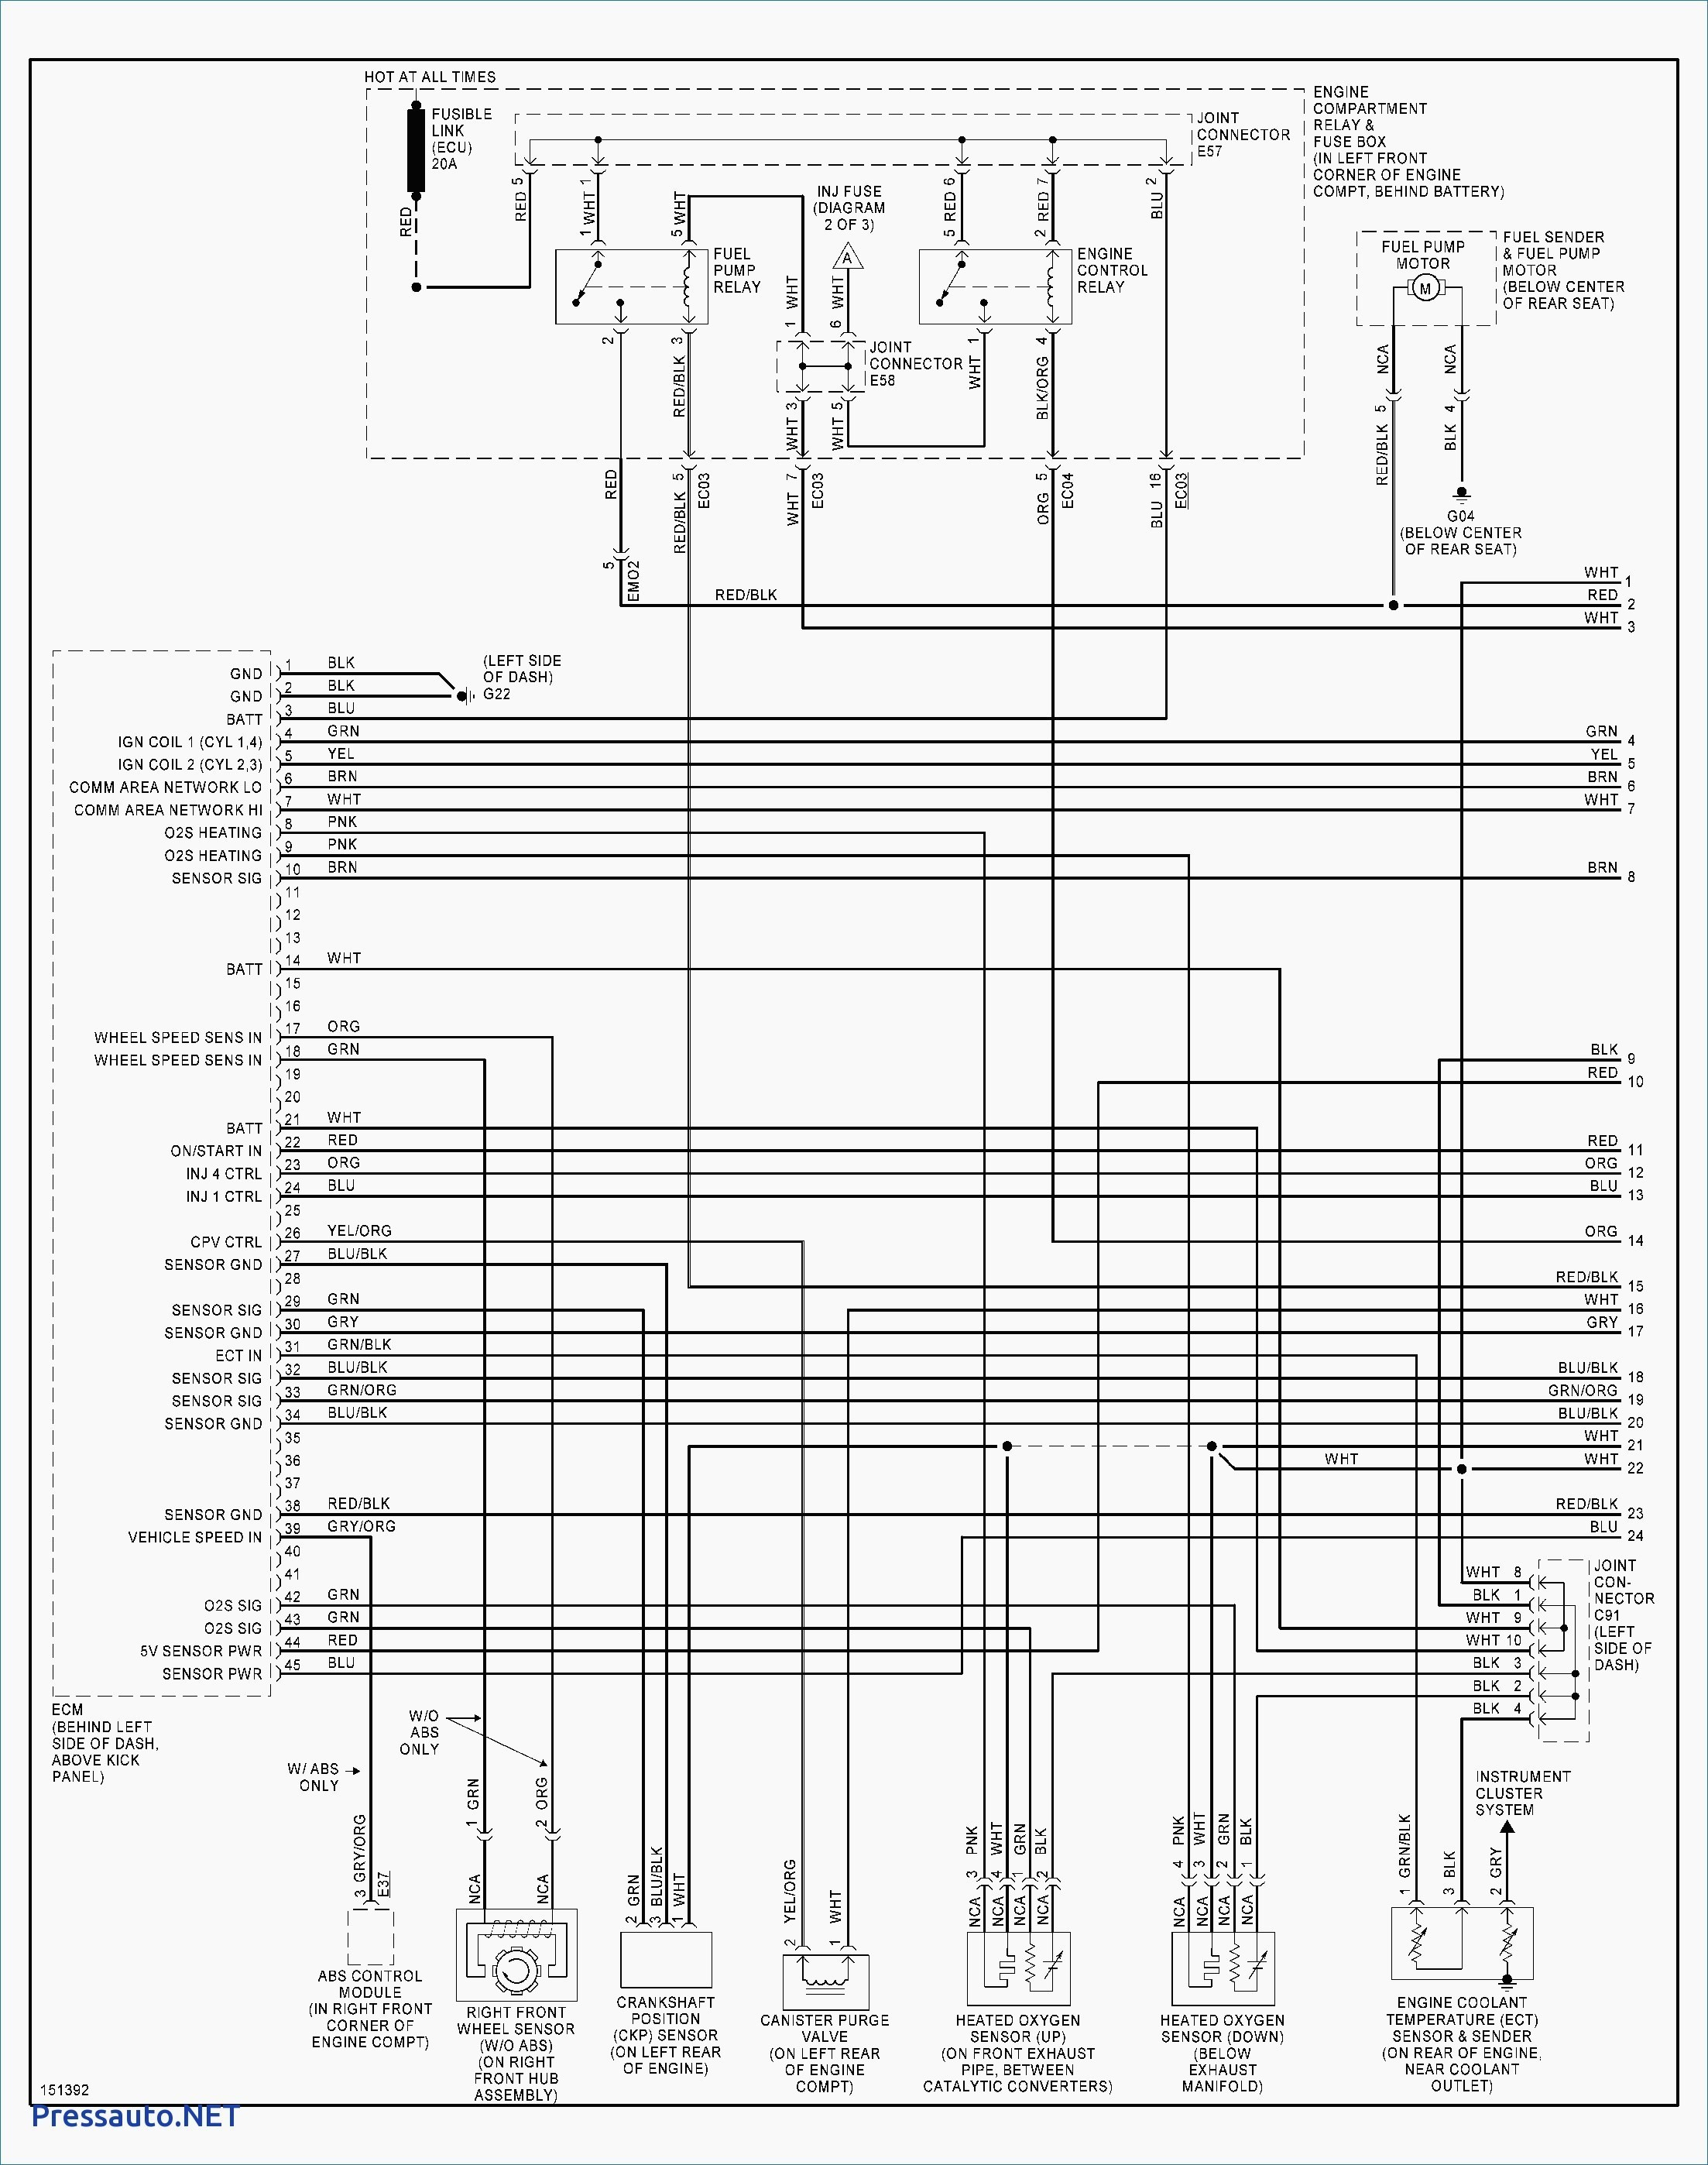 2013 Elantra Radio Wiring Diagram Trusted Wiring Diagram